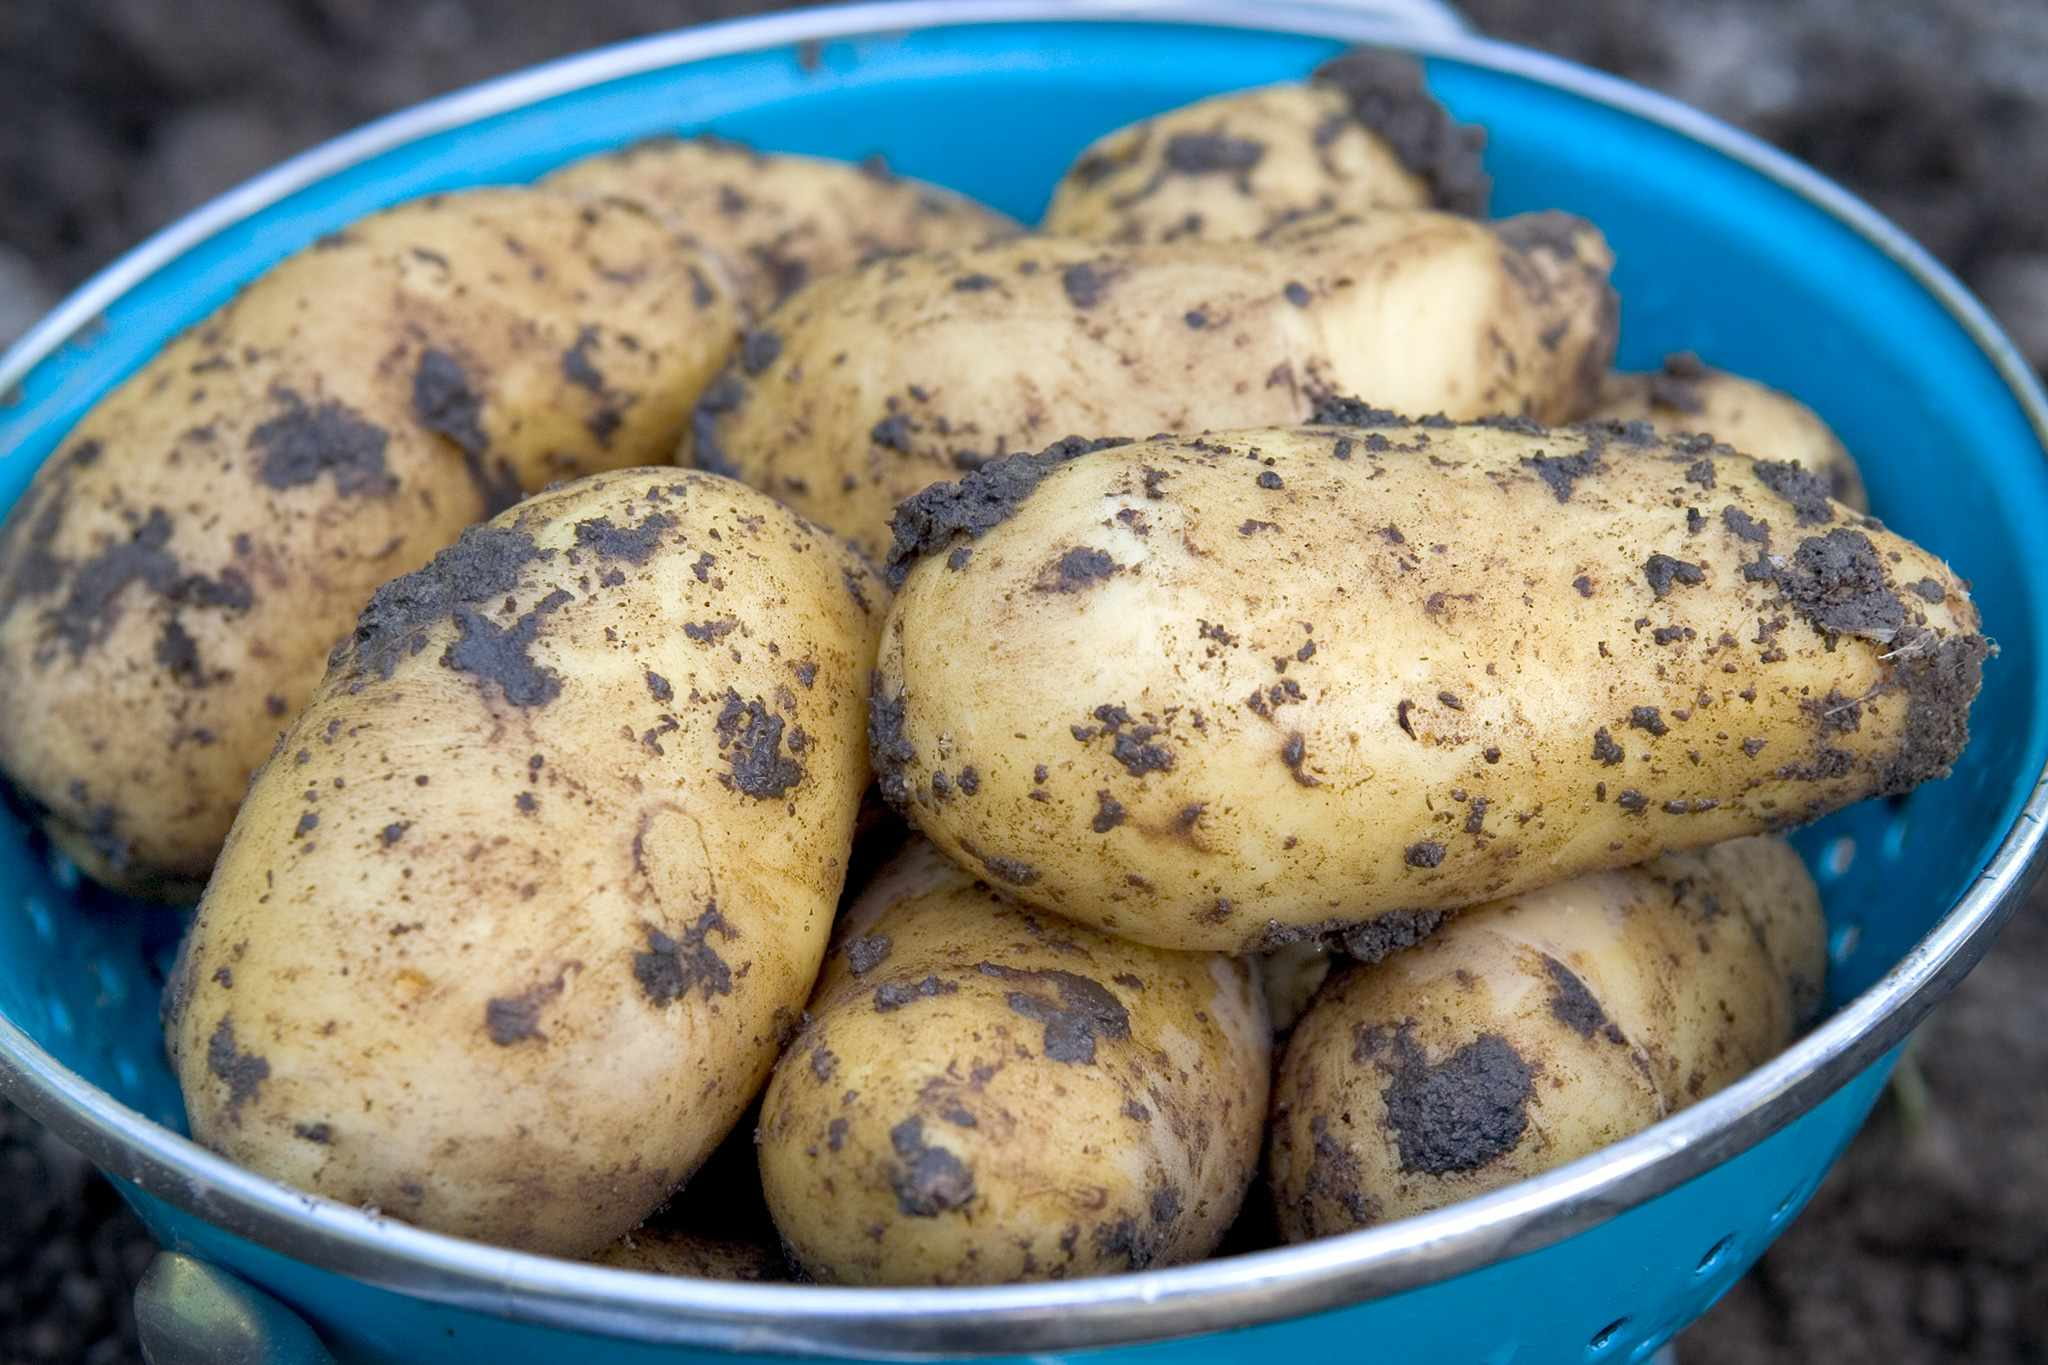 Harvested maincrop potatoes